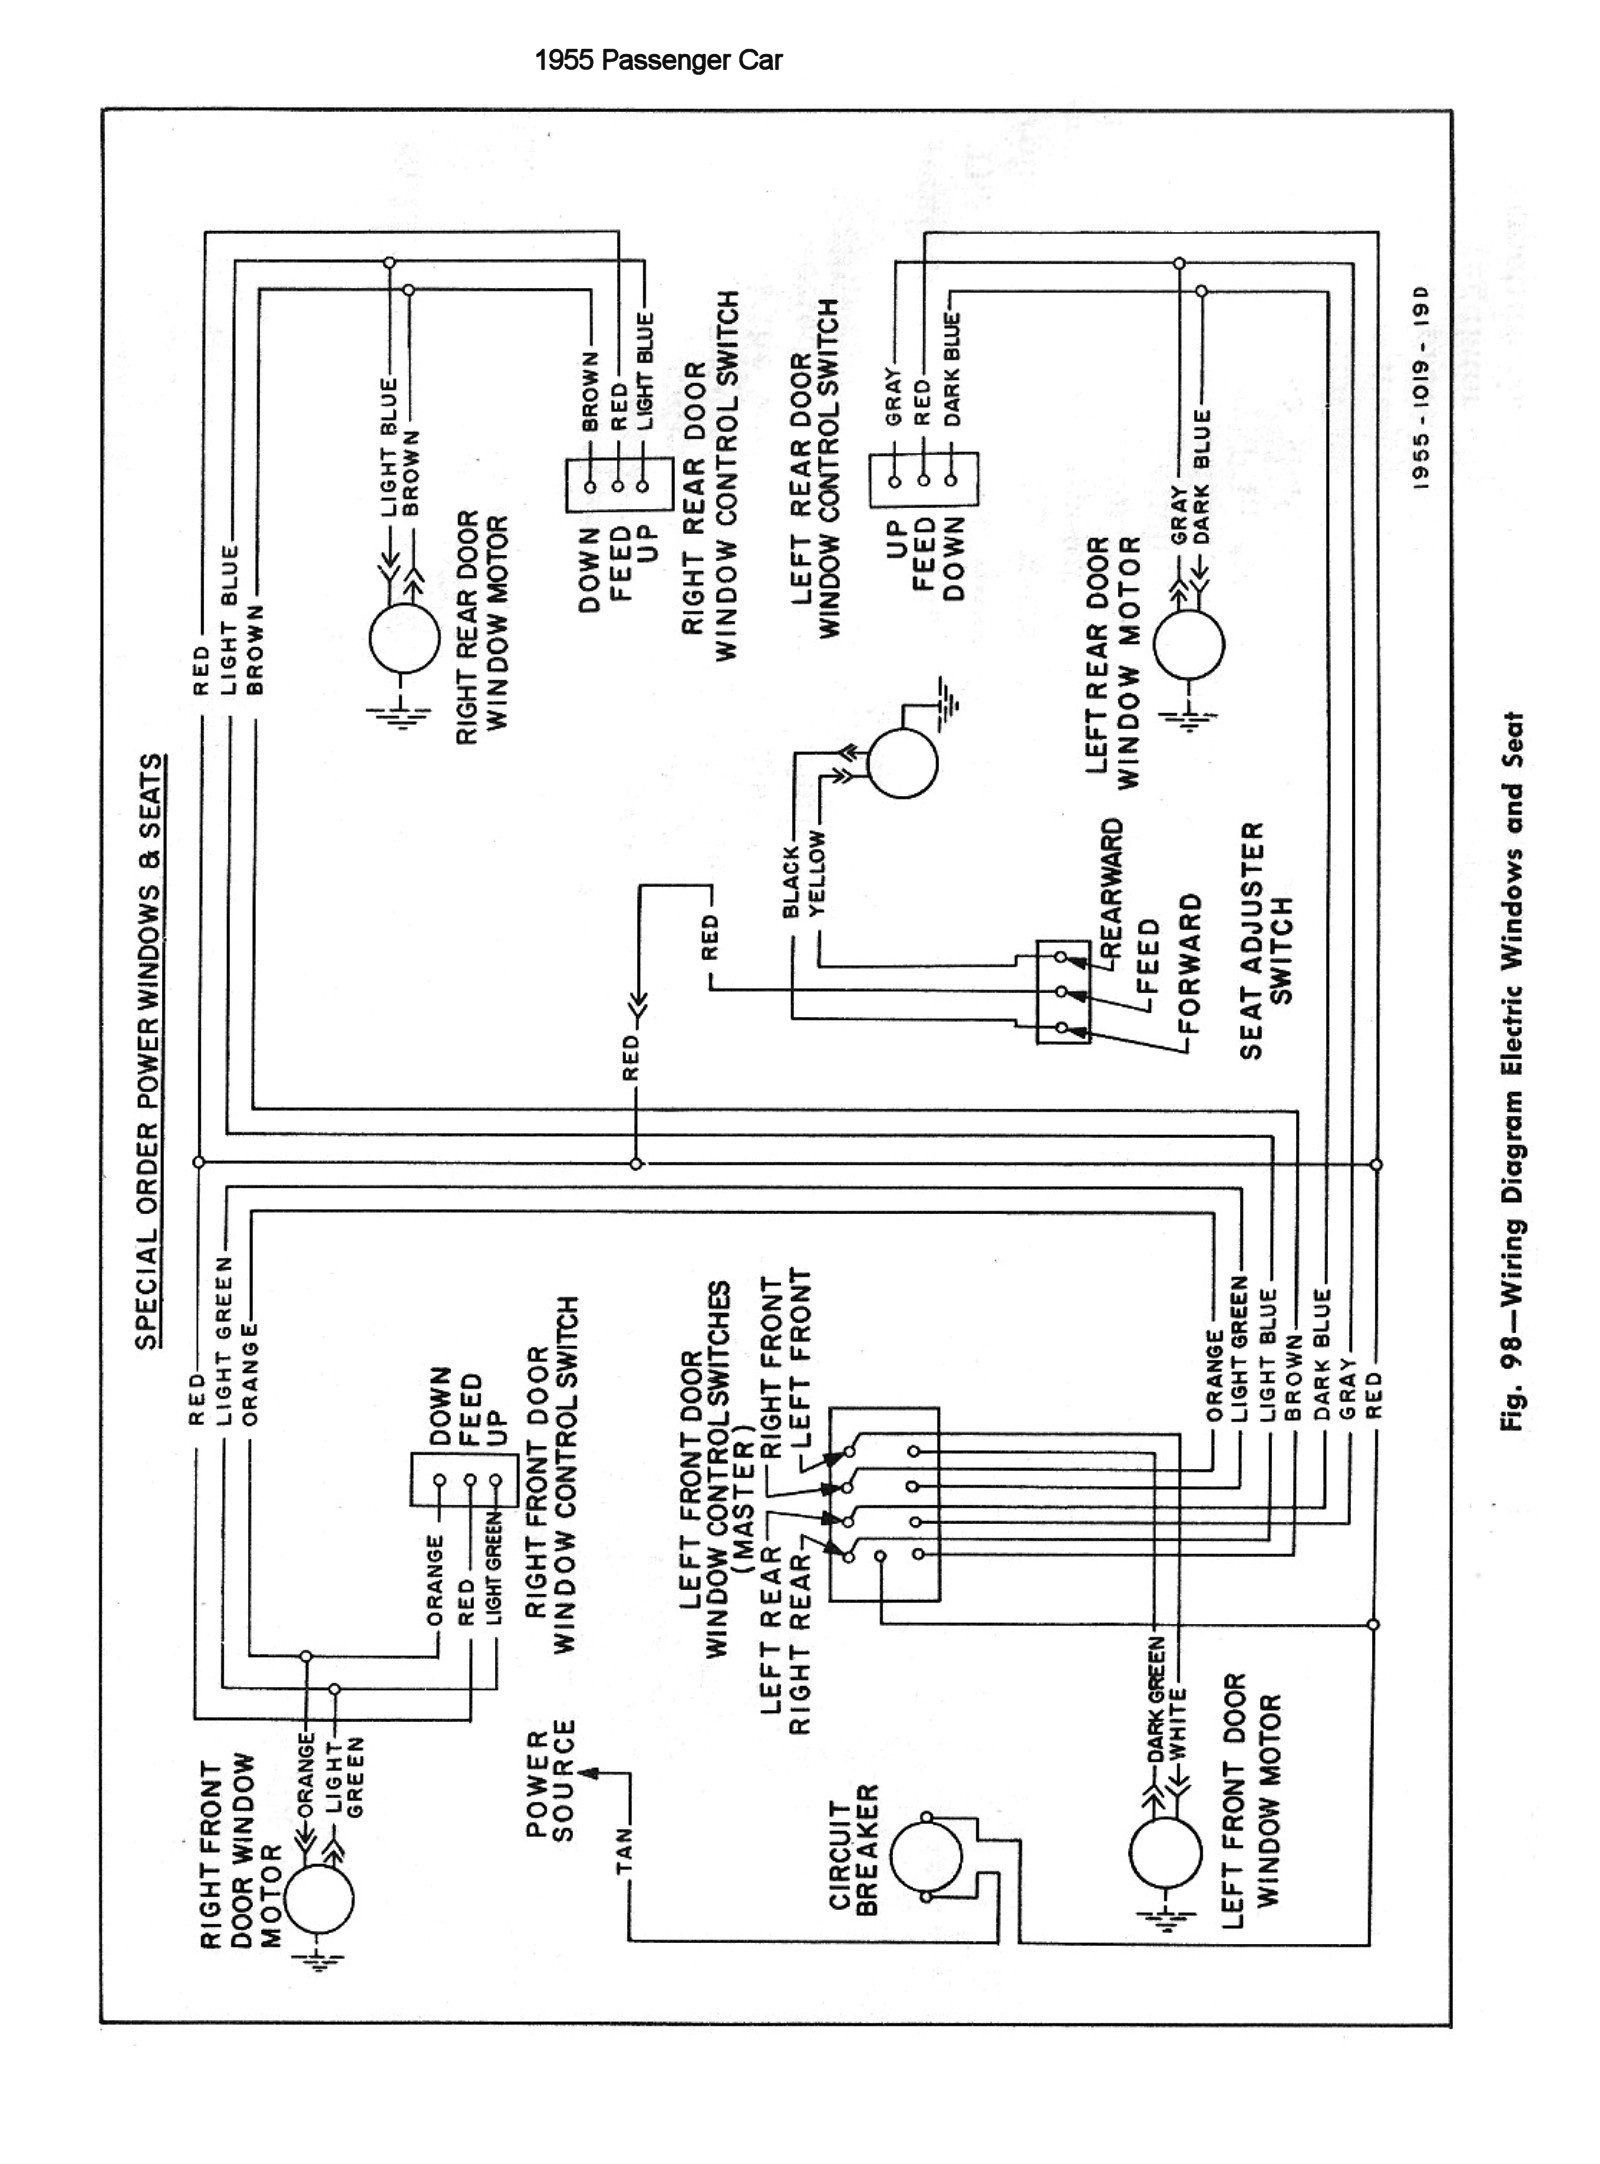 small resolution of 1982 camaro turn signal wiring diagram wiring library rh 57 icse cloud09 org 1980 camaro wiring